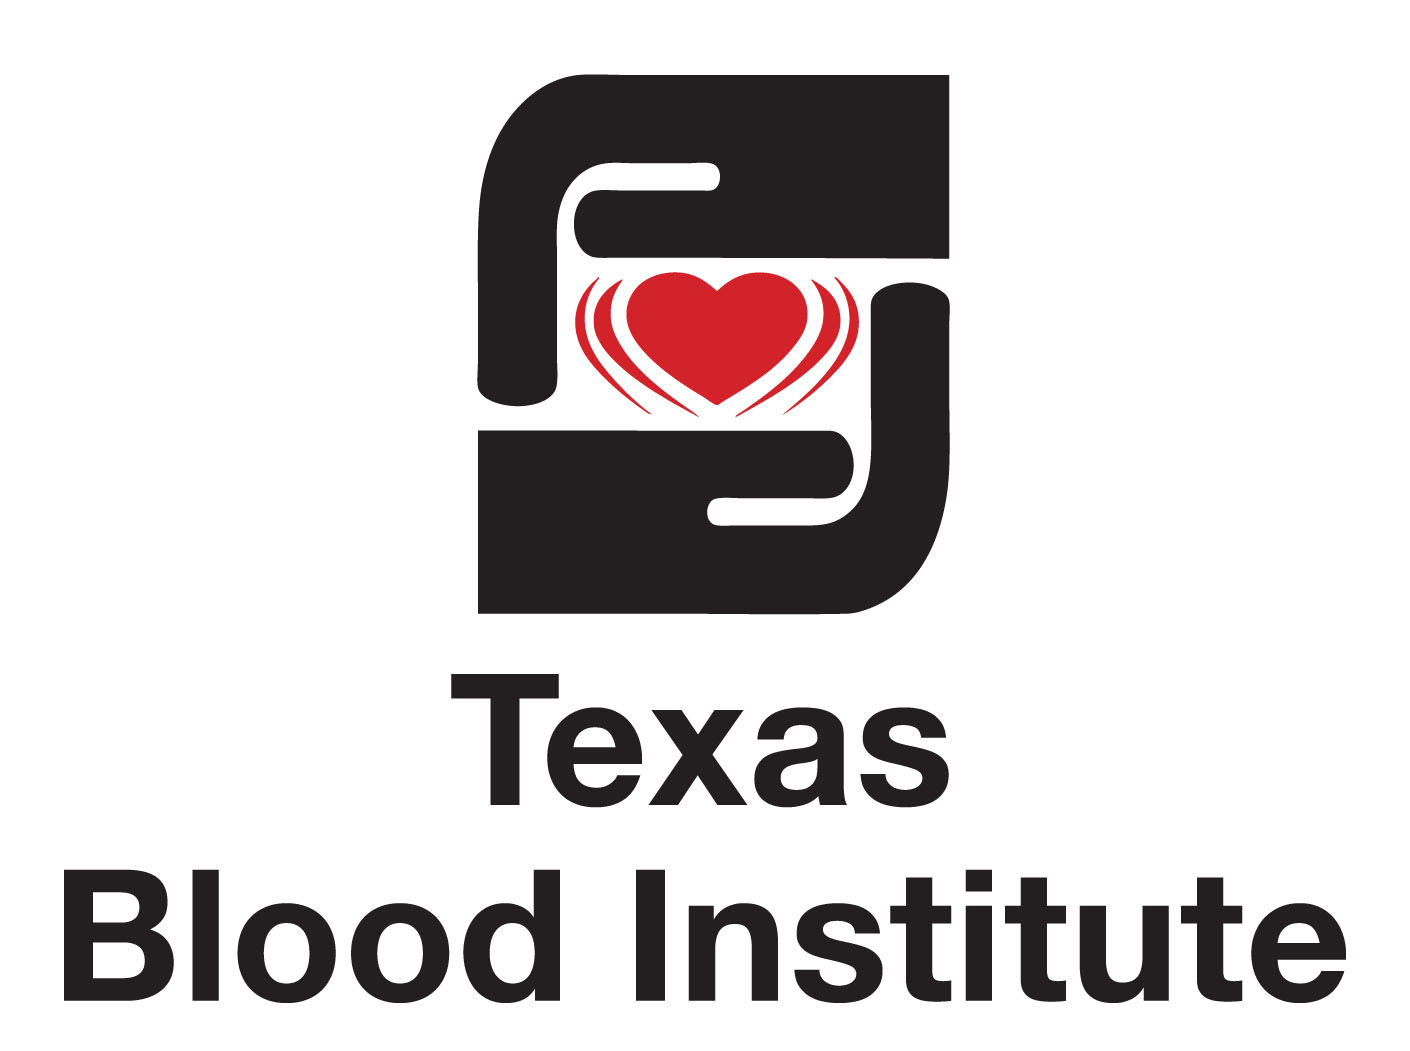 Texas Blood Institute Logo